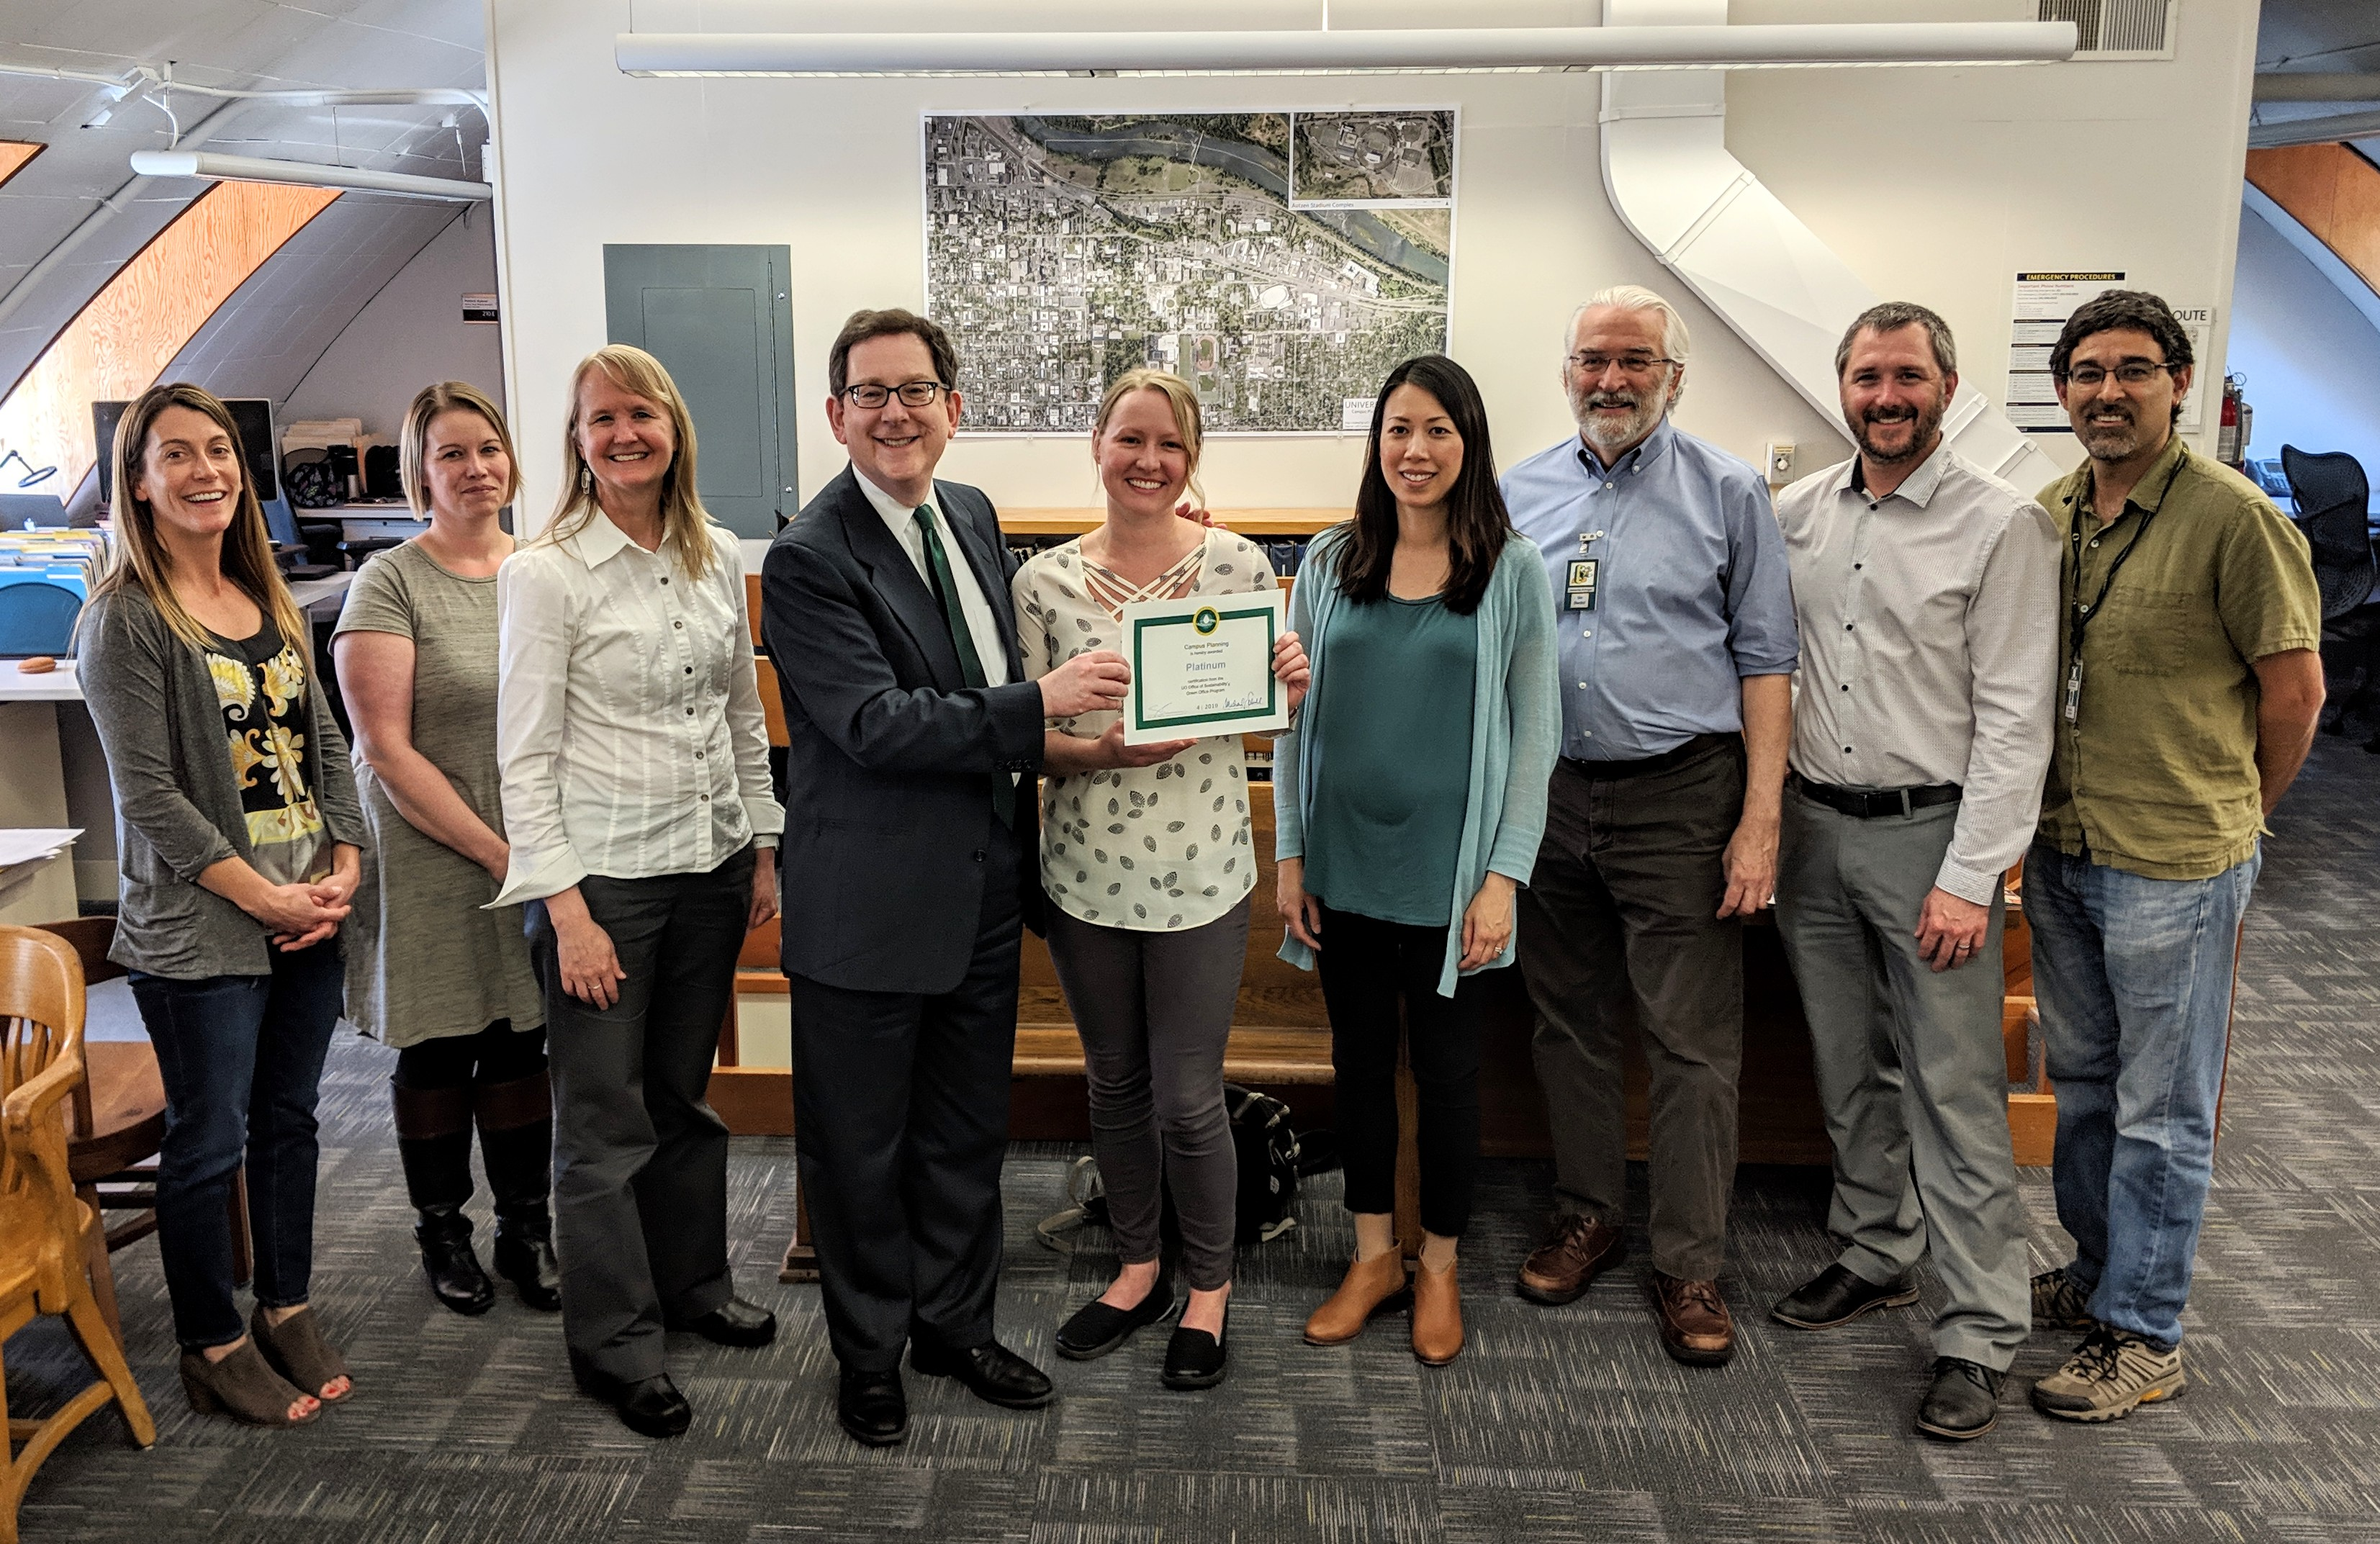 Campus planning staff receiving the 2019 Green Office Certification